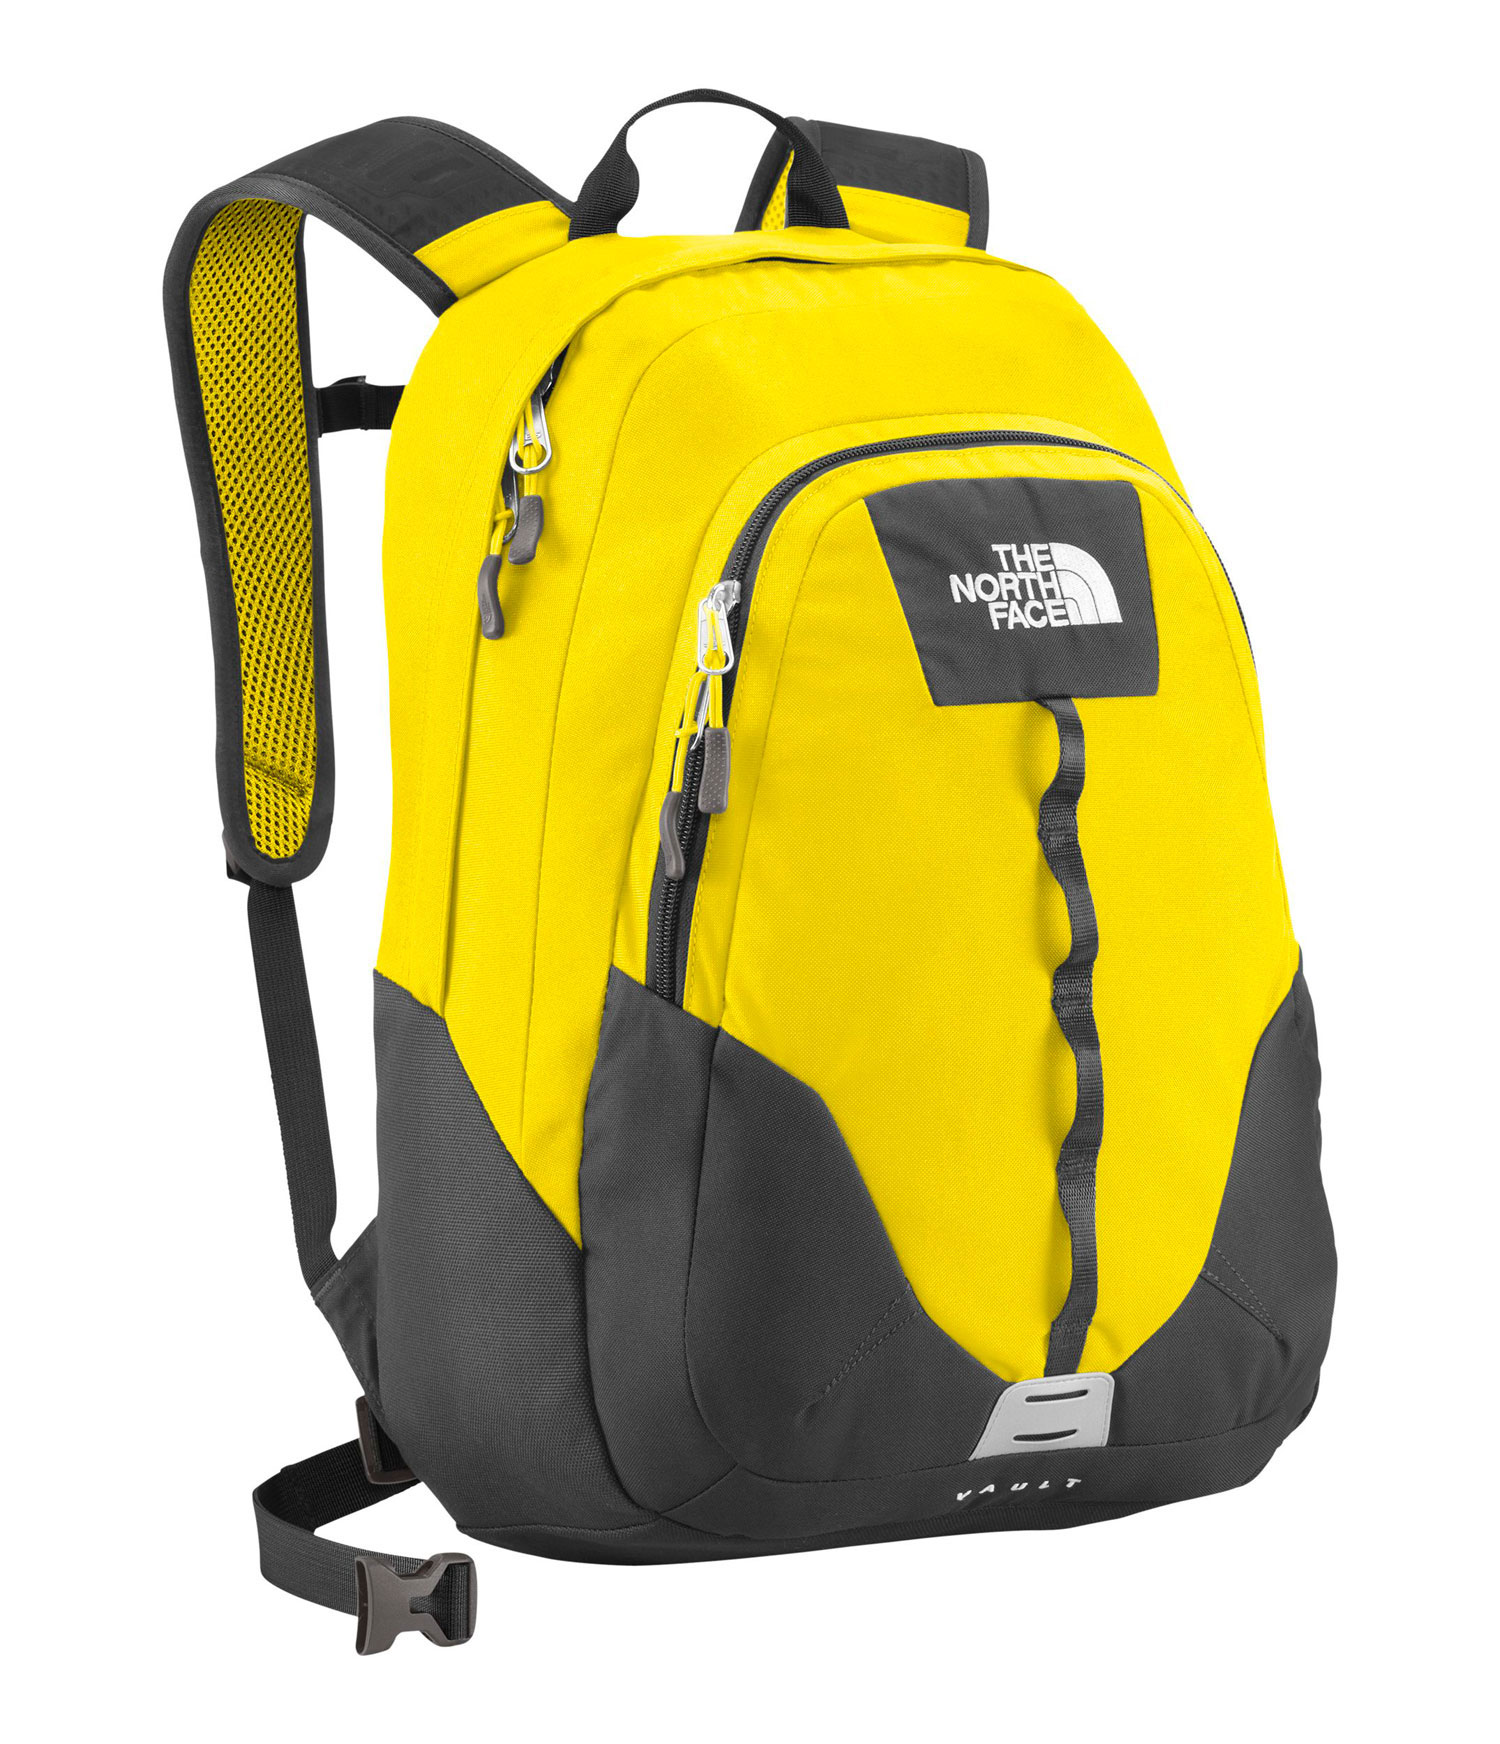 Key Features of The North Face Vault Backpack: Avg Weight: 1 lb 10 oz (730 g) Volume: 1587 in3 (26 liters) Fabric: 600D polyester, 300D mini-ripstop, 1200D polyester FlexVent ™ injection-molded shoulder straps Comfortable, stitched foam back panel Large main compartment fits books and binders Secondary compartment with organization Women-specific version of this daypack available on page 20 - $41.95